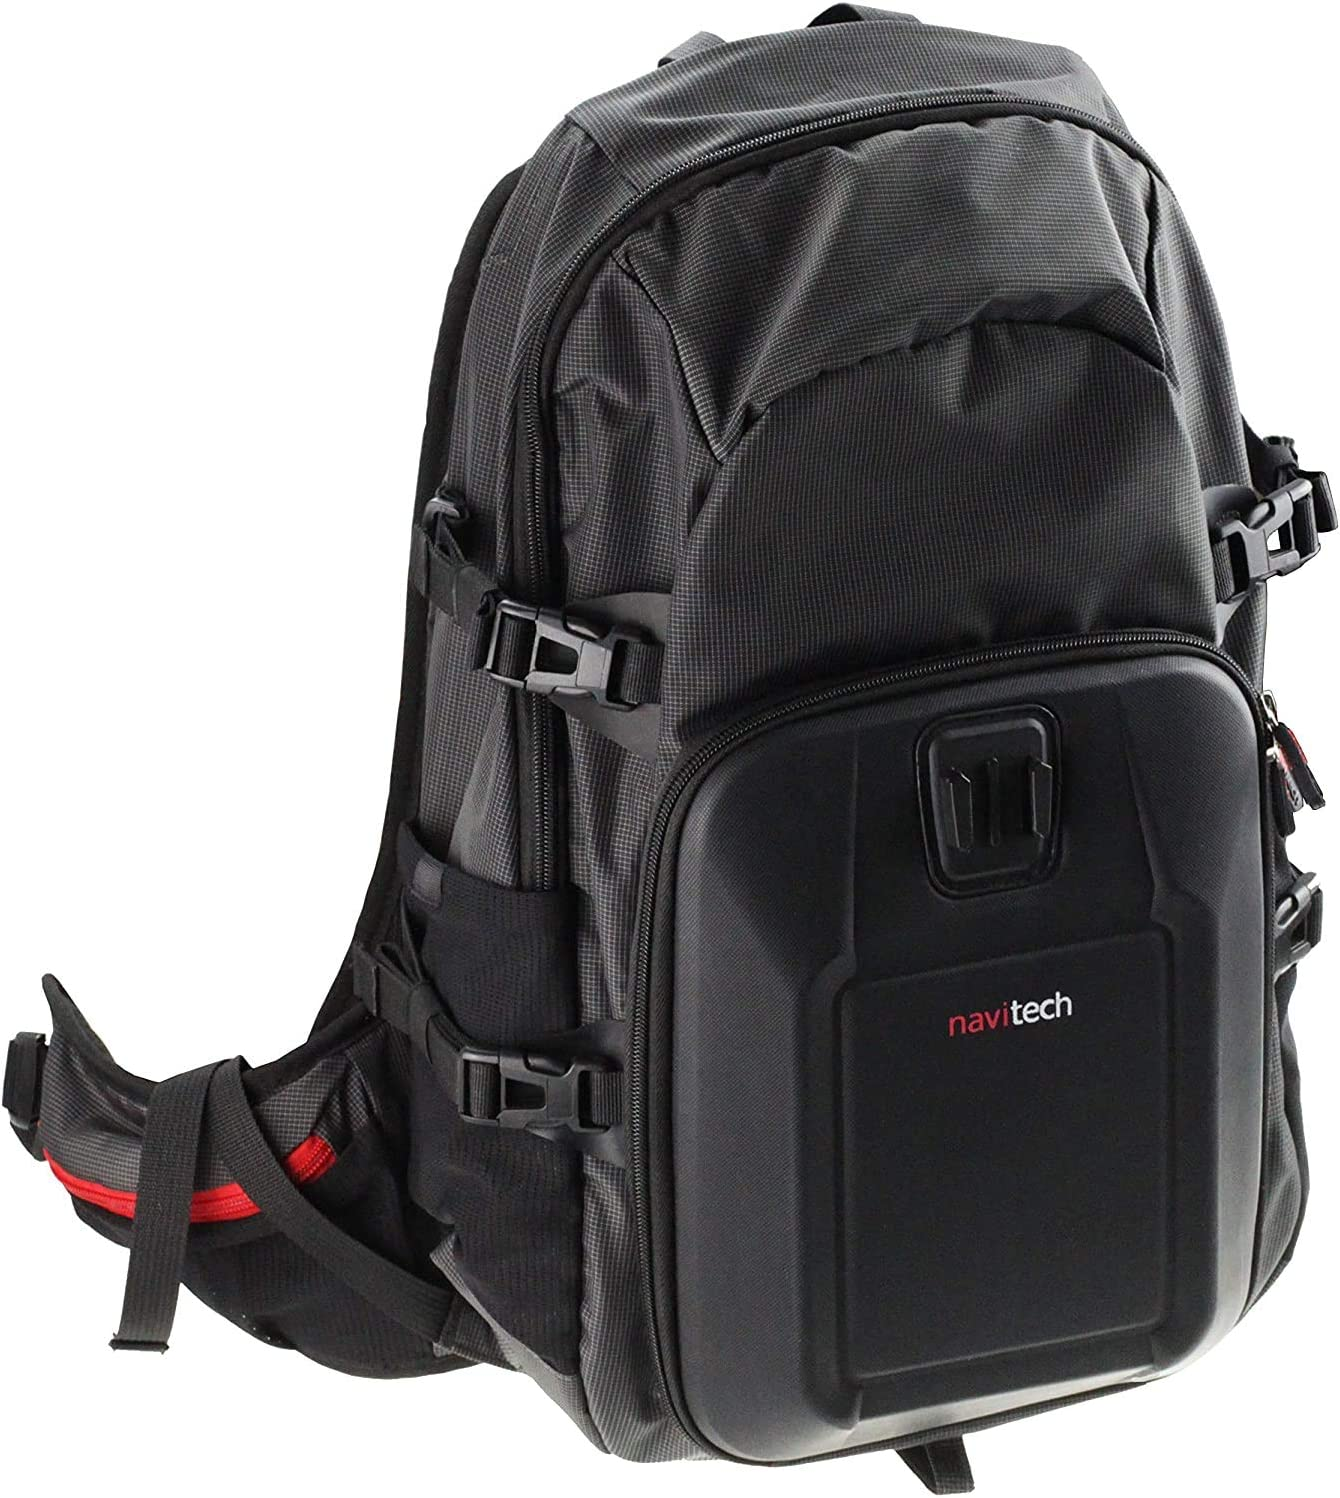 Navitech Action Camera Backpack /& 18-in-1 Accessory Combo Kit with Integrated Chest Strap Compatible with The Tomtom Bandit